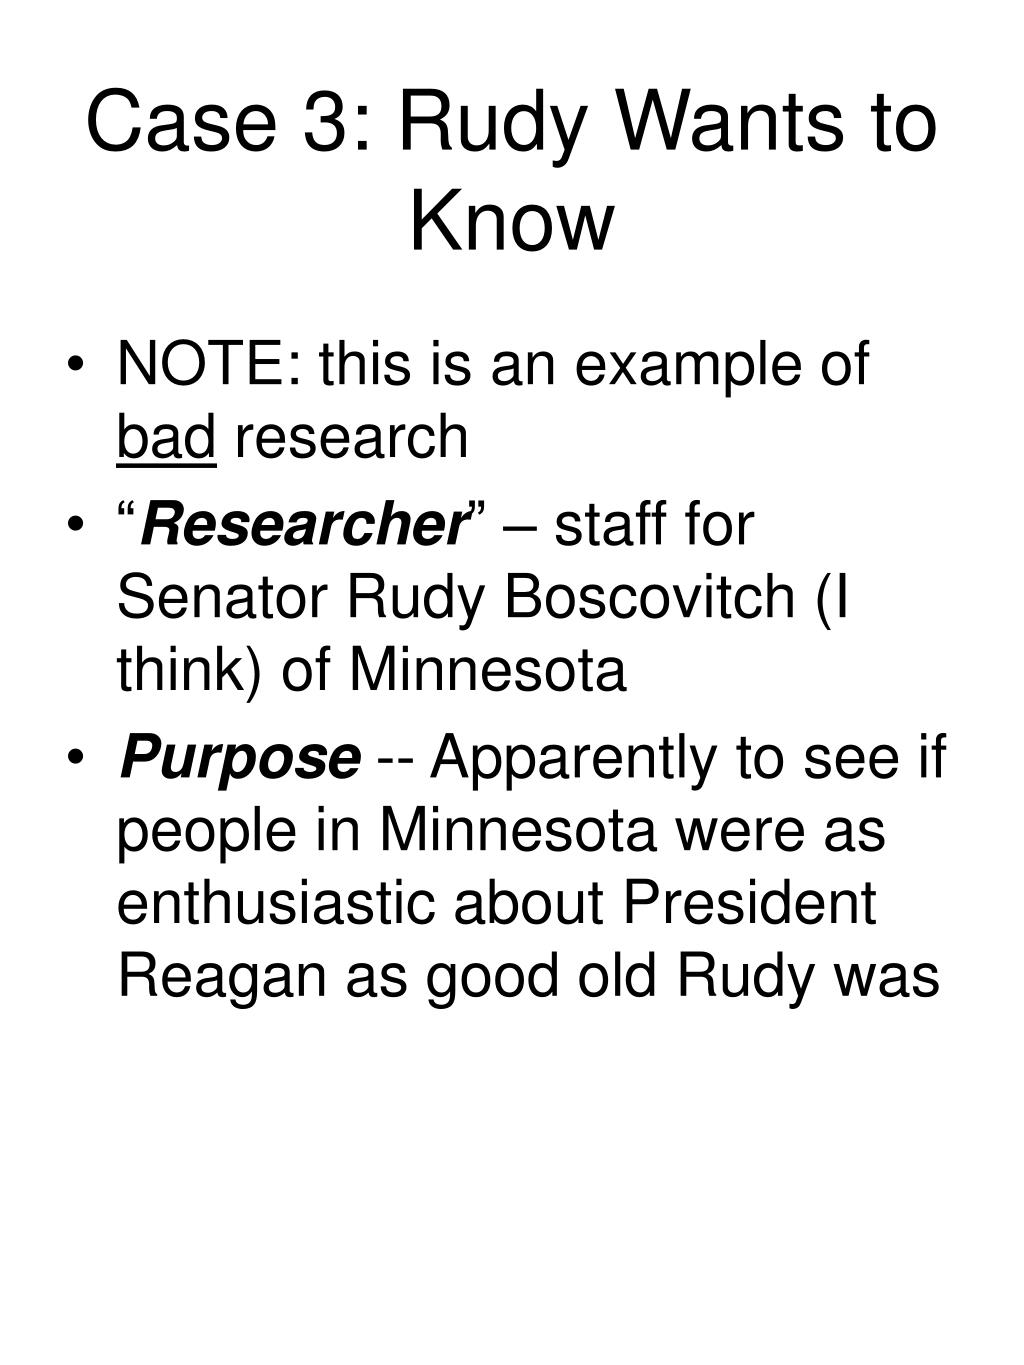 Case 3: Rudy Wants to Know